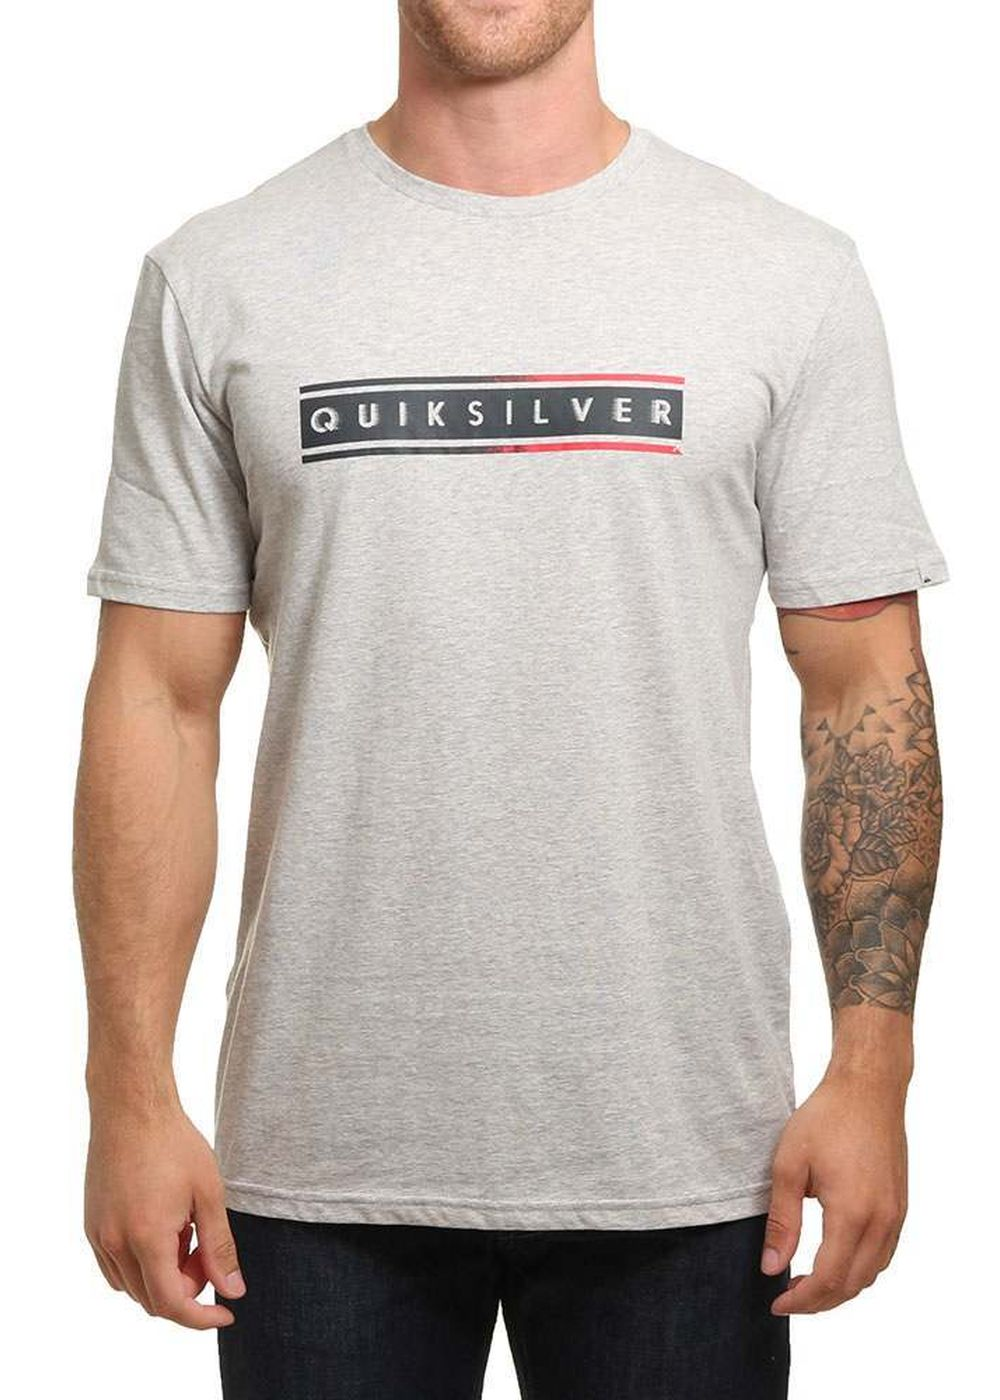 quiksilver-daily-surf-tee-athletic-heather